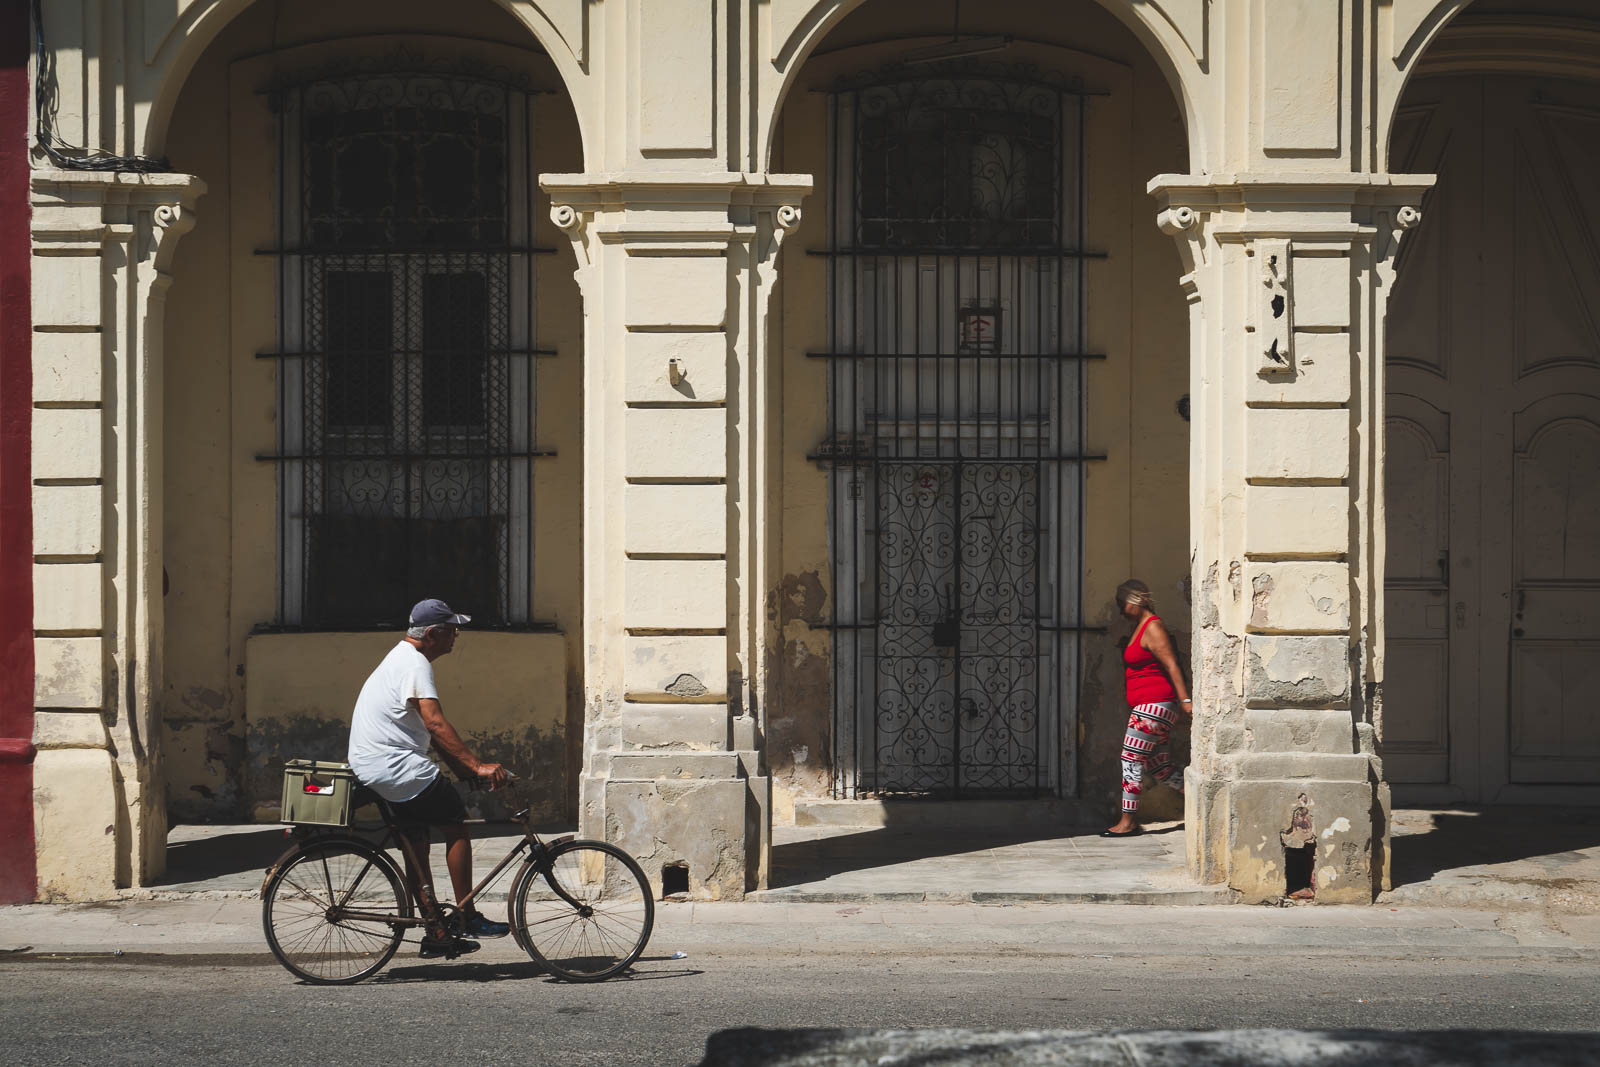 cuba facts - it's divers - a man riding his bicycle